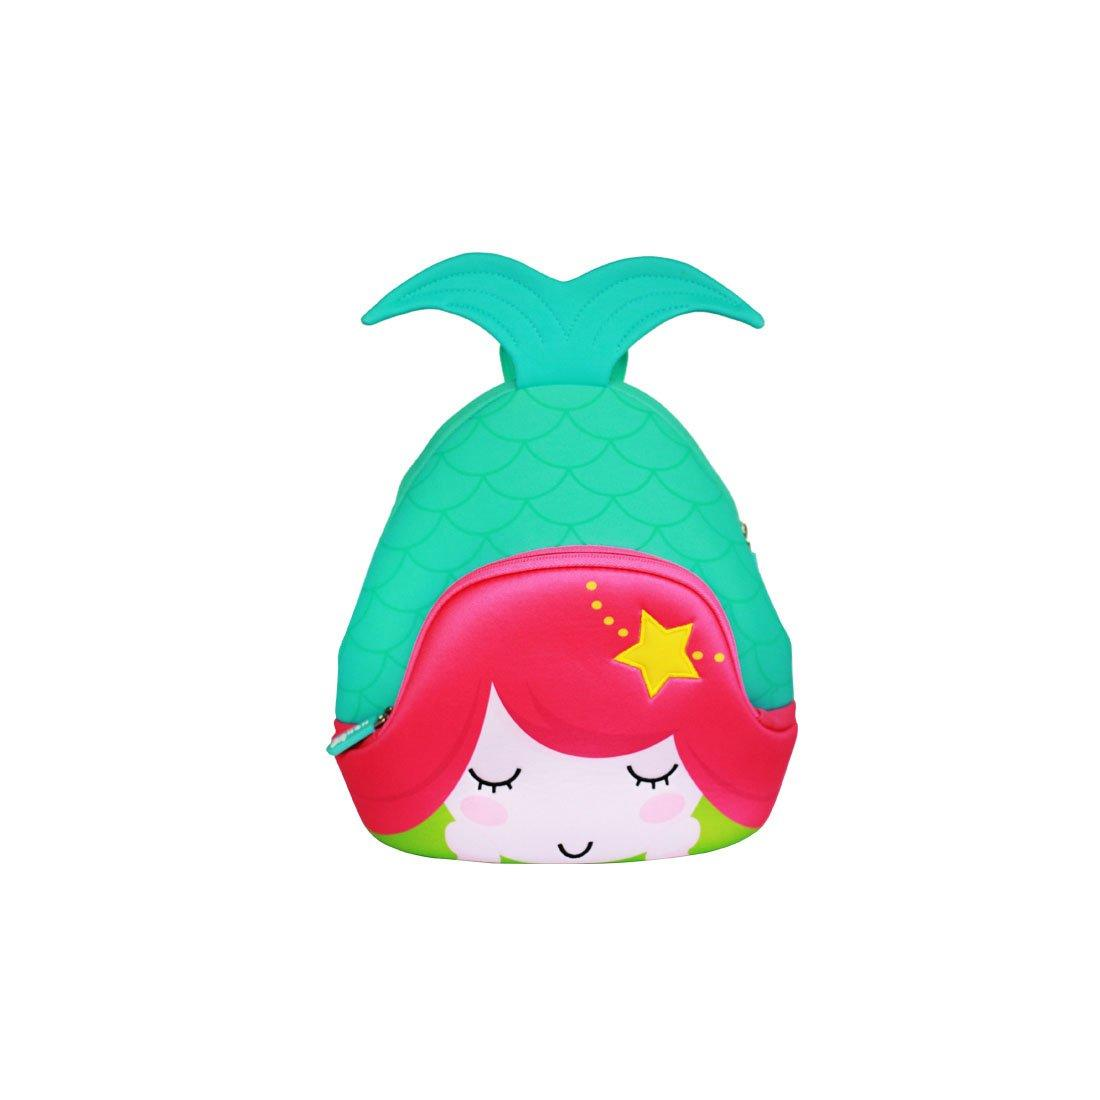 NH046 Mermaid fashion children neoprene pre-school backpack for girls.